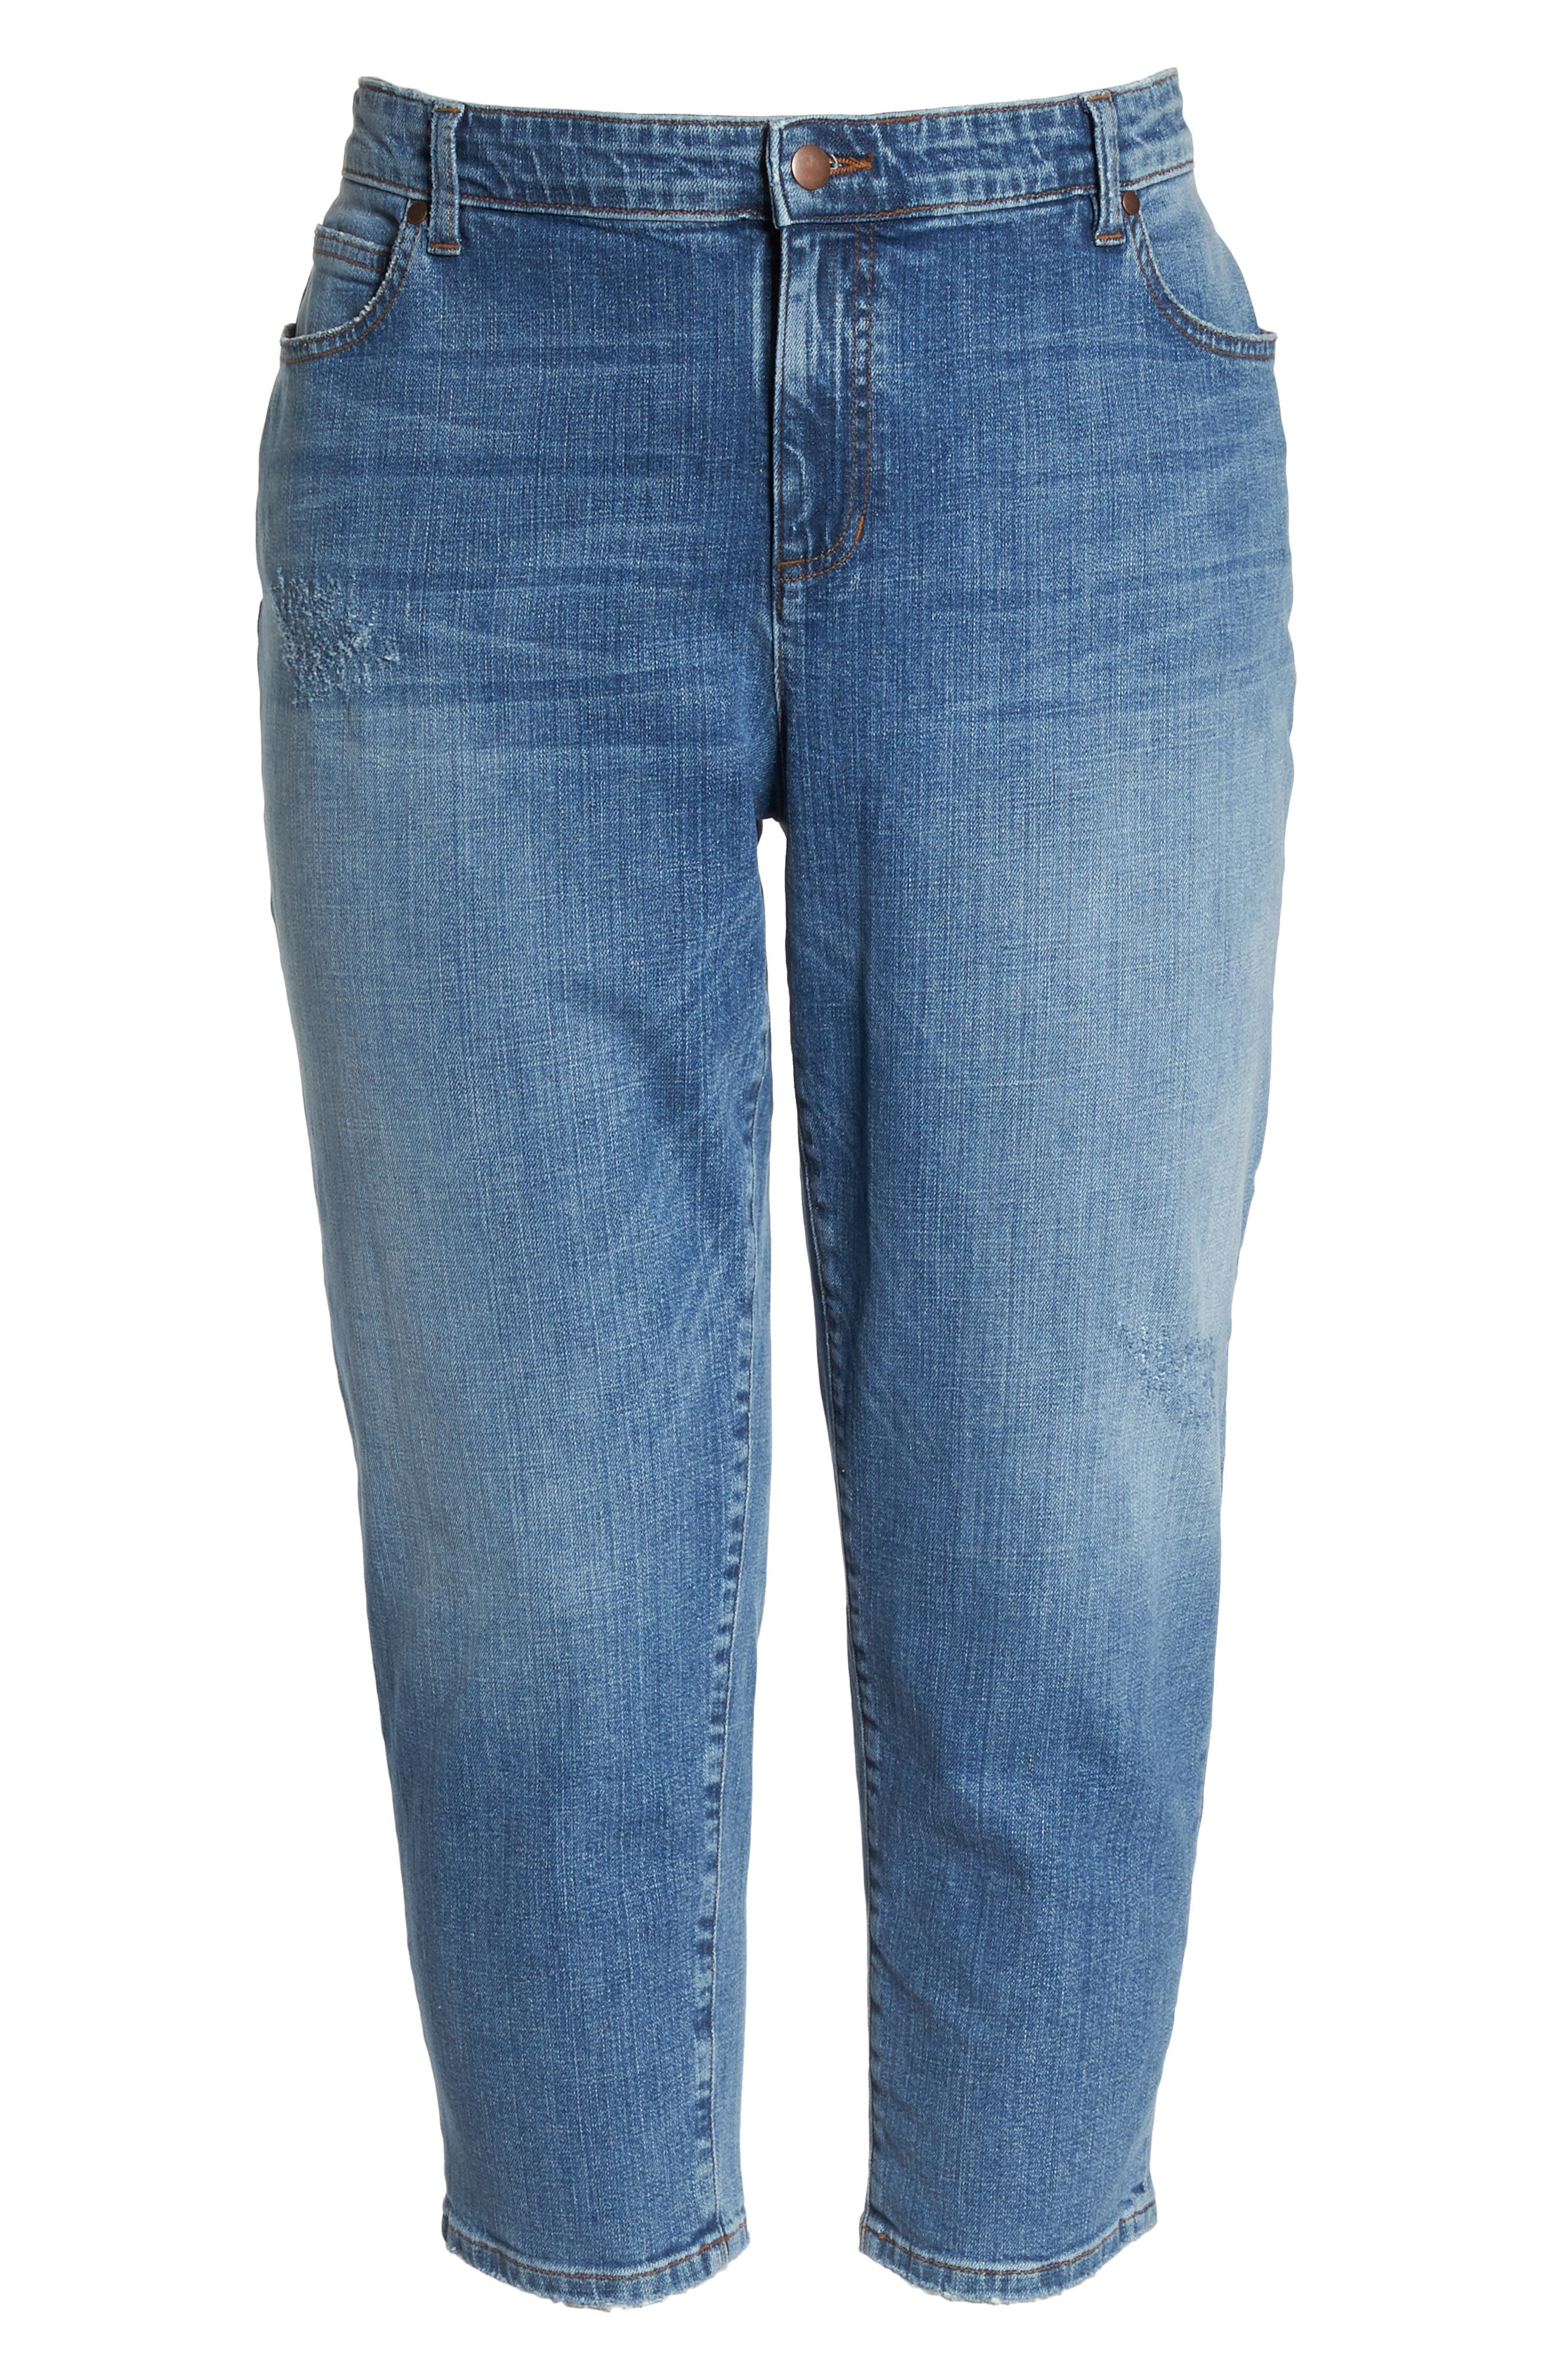 Tapered Crop Jeans,                             Alternate thumbnail 7, color,                             Abraded Sky Blue